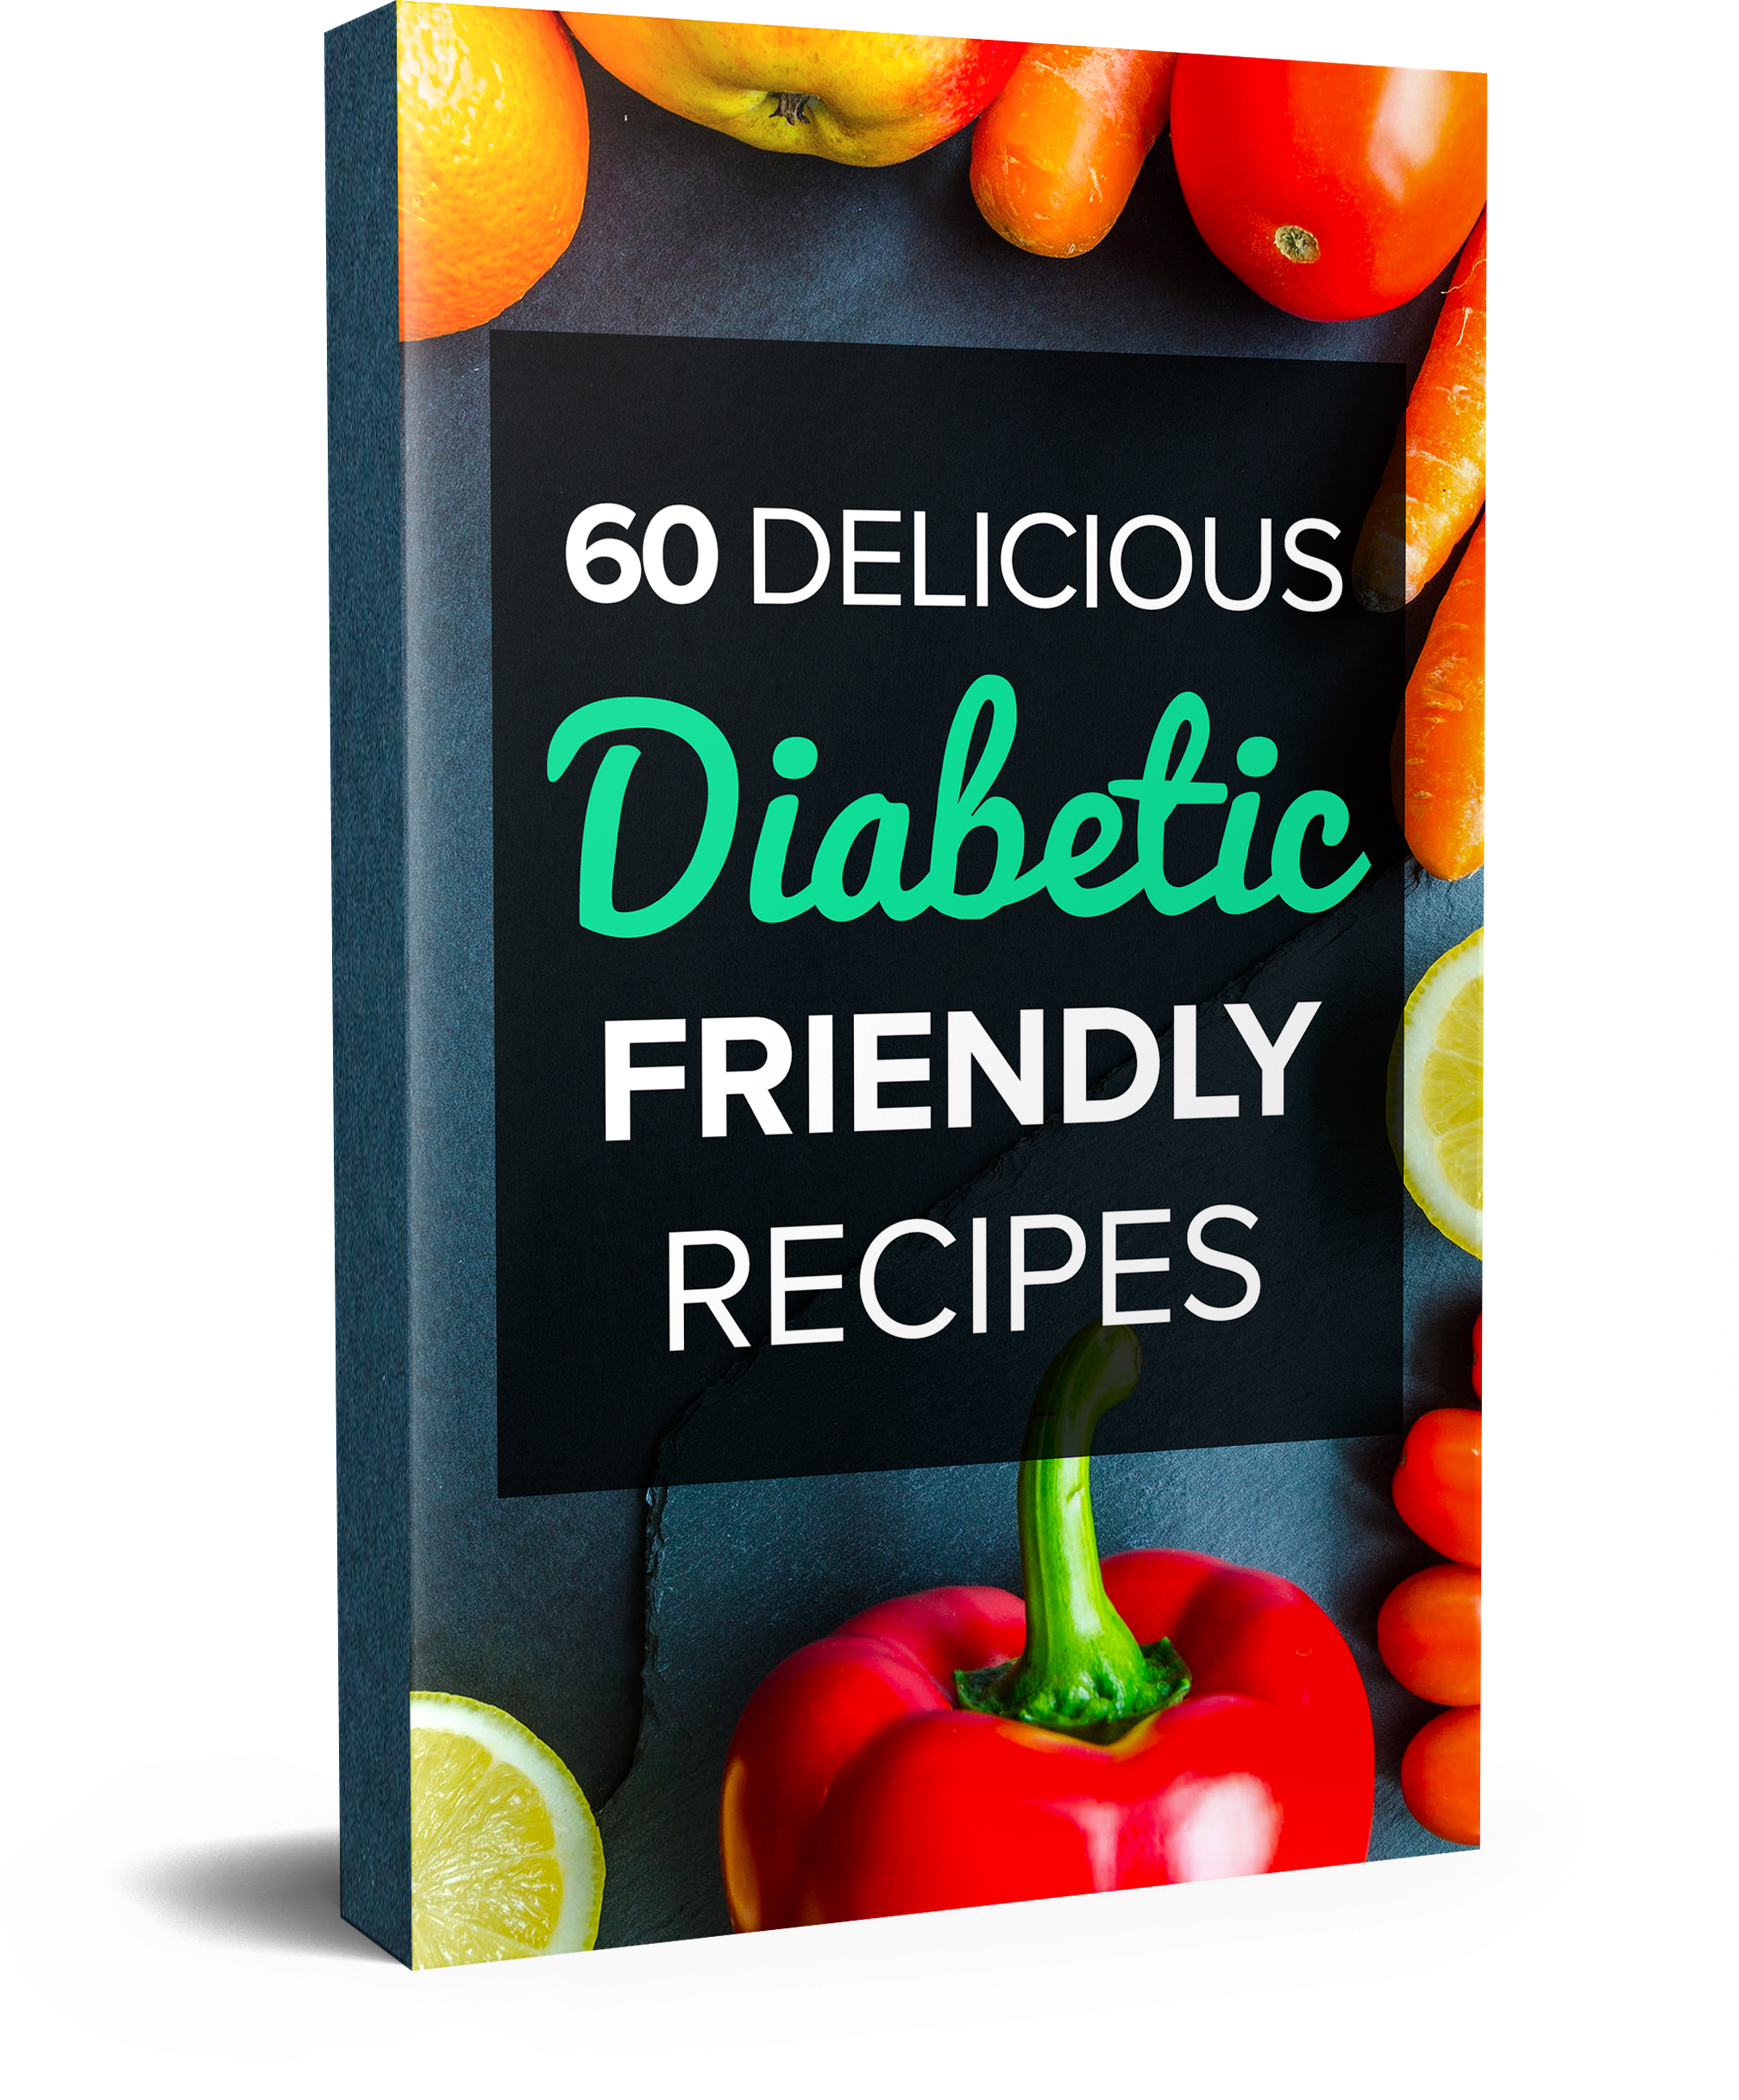 Diabetic Cookbook Review-Diabetic Cookbook Download